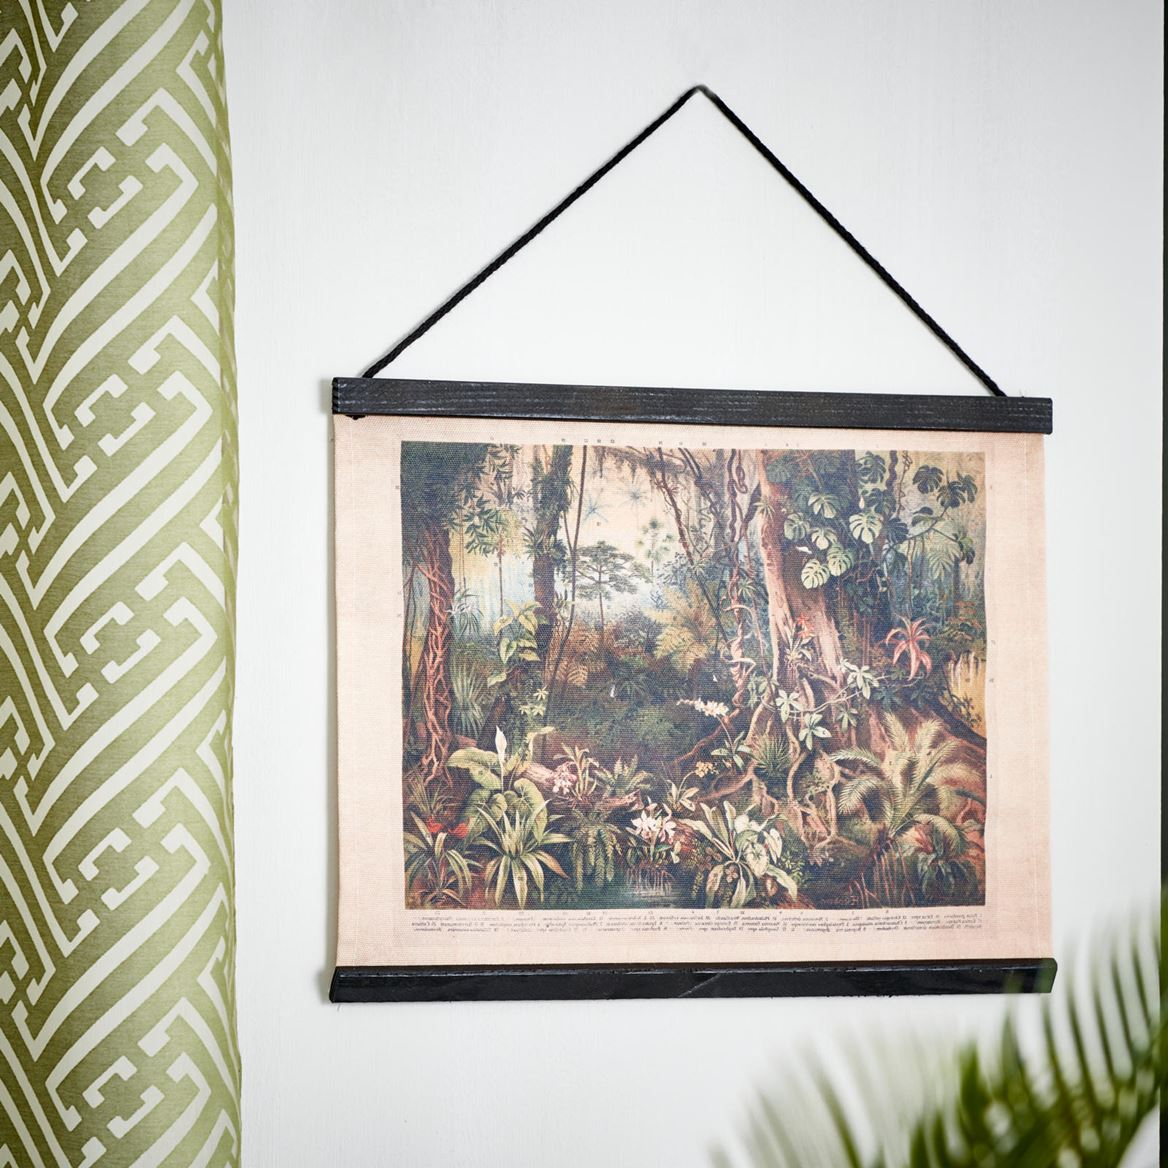 JUNGLE Decoración de pared negro, verde A 30 x An. 40 cm_jungle-decoración-de-pared-negro,-verde-a-30-x-an--40-cm